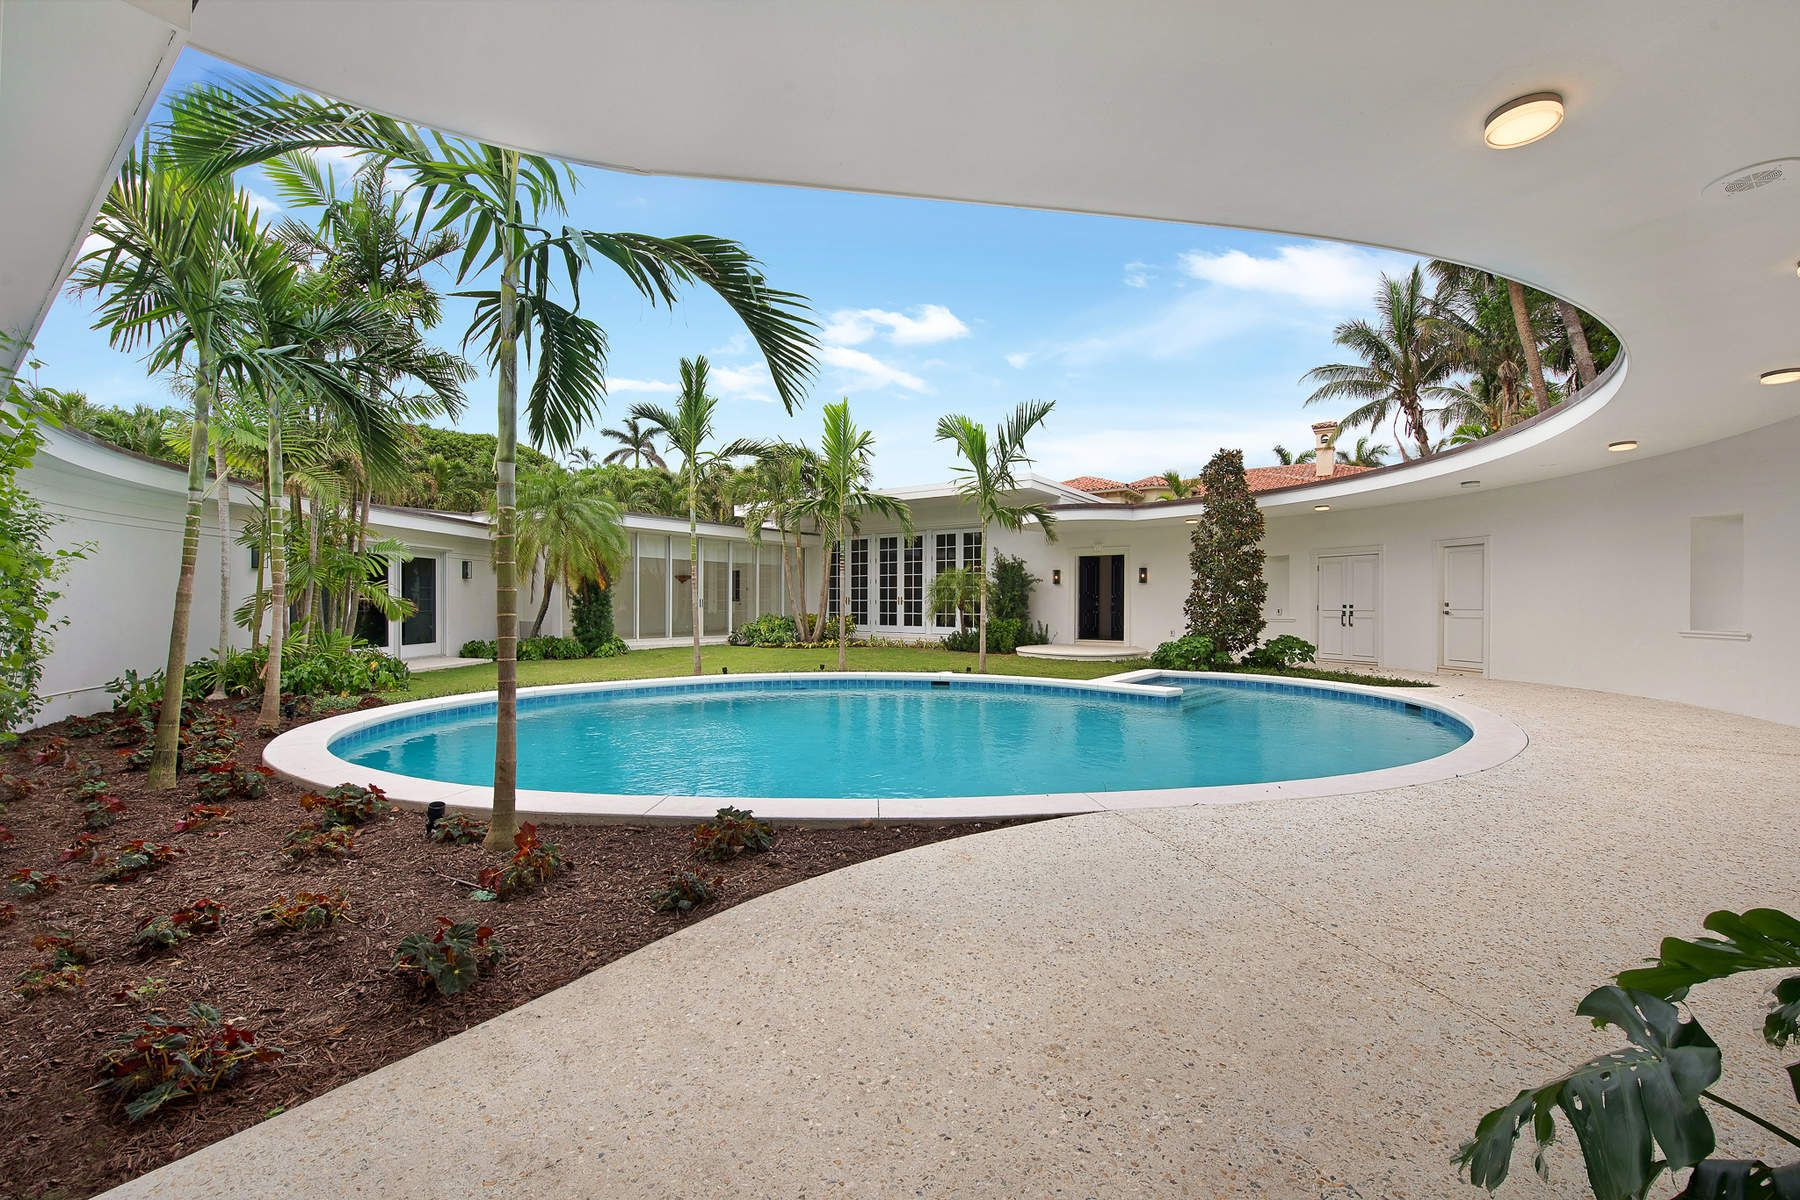 Single Family Home for Sale at Mid Century Modern Courtyard Home 161 Woodbridge Rd Palm Beach, Florida 33480 United States